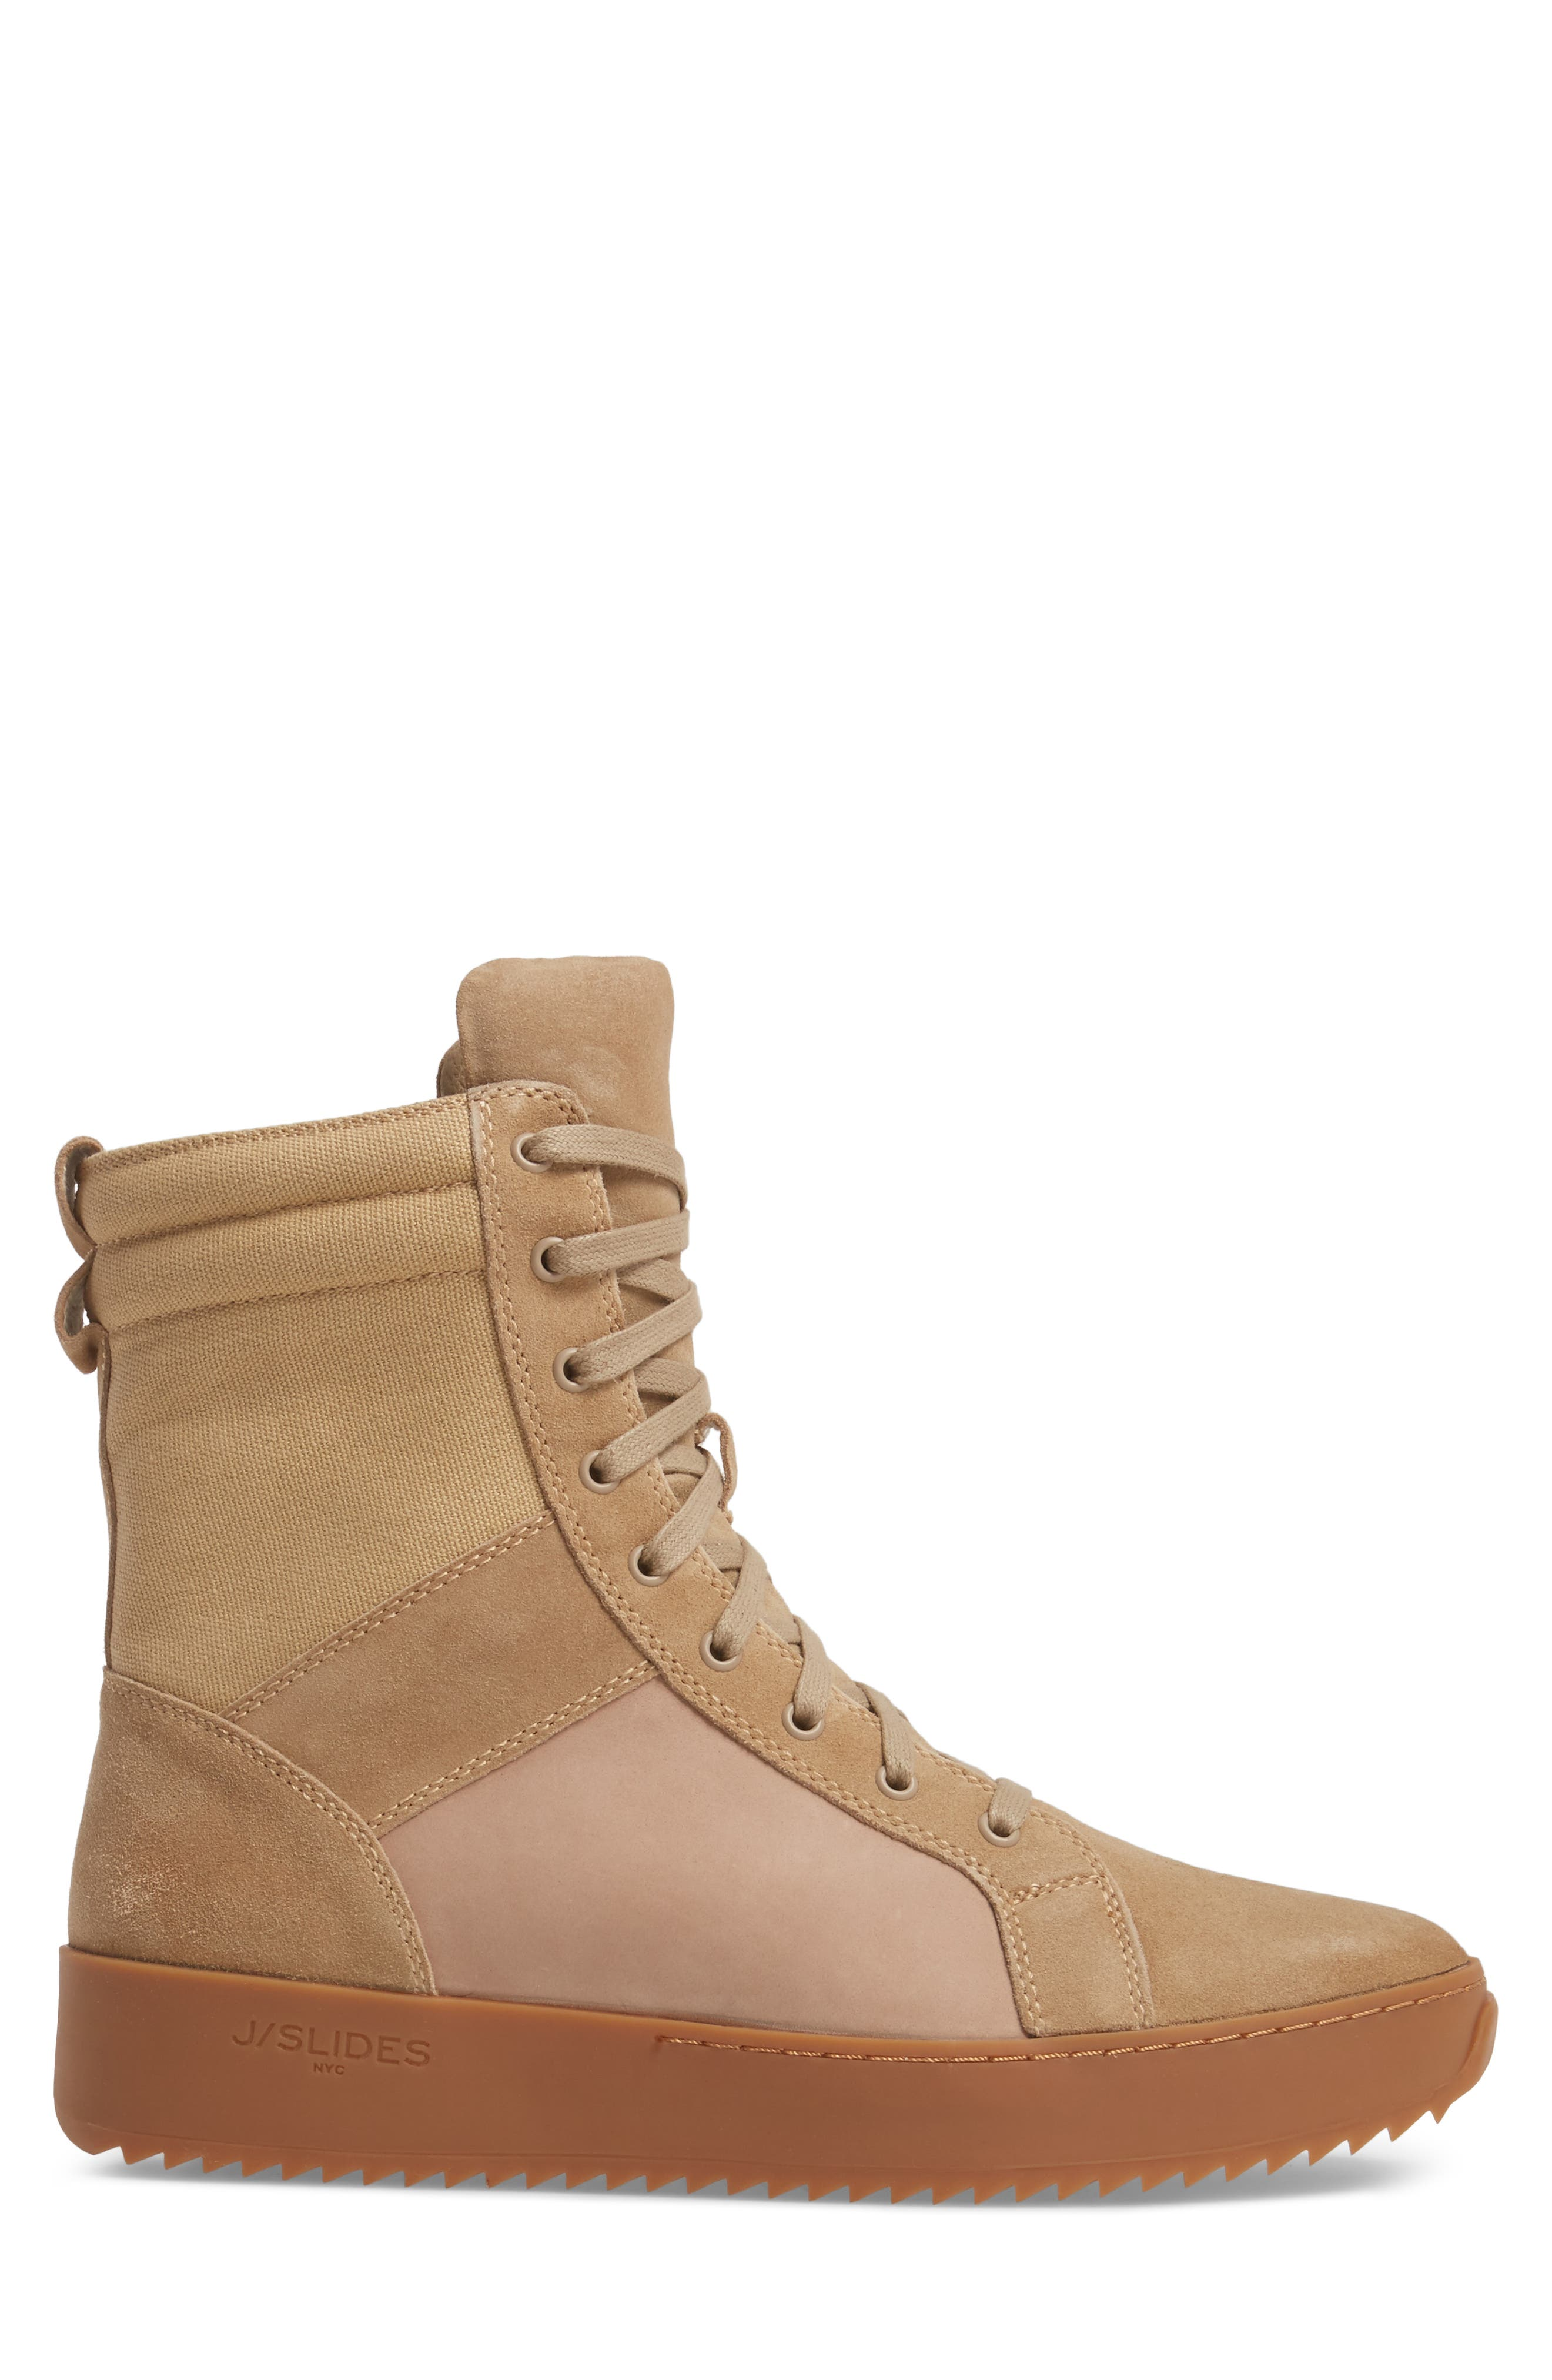 Shane Sneaker,                             Alternate thumbnail 3, color,                             Sand Suede